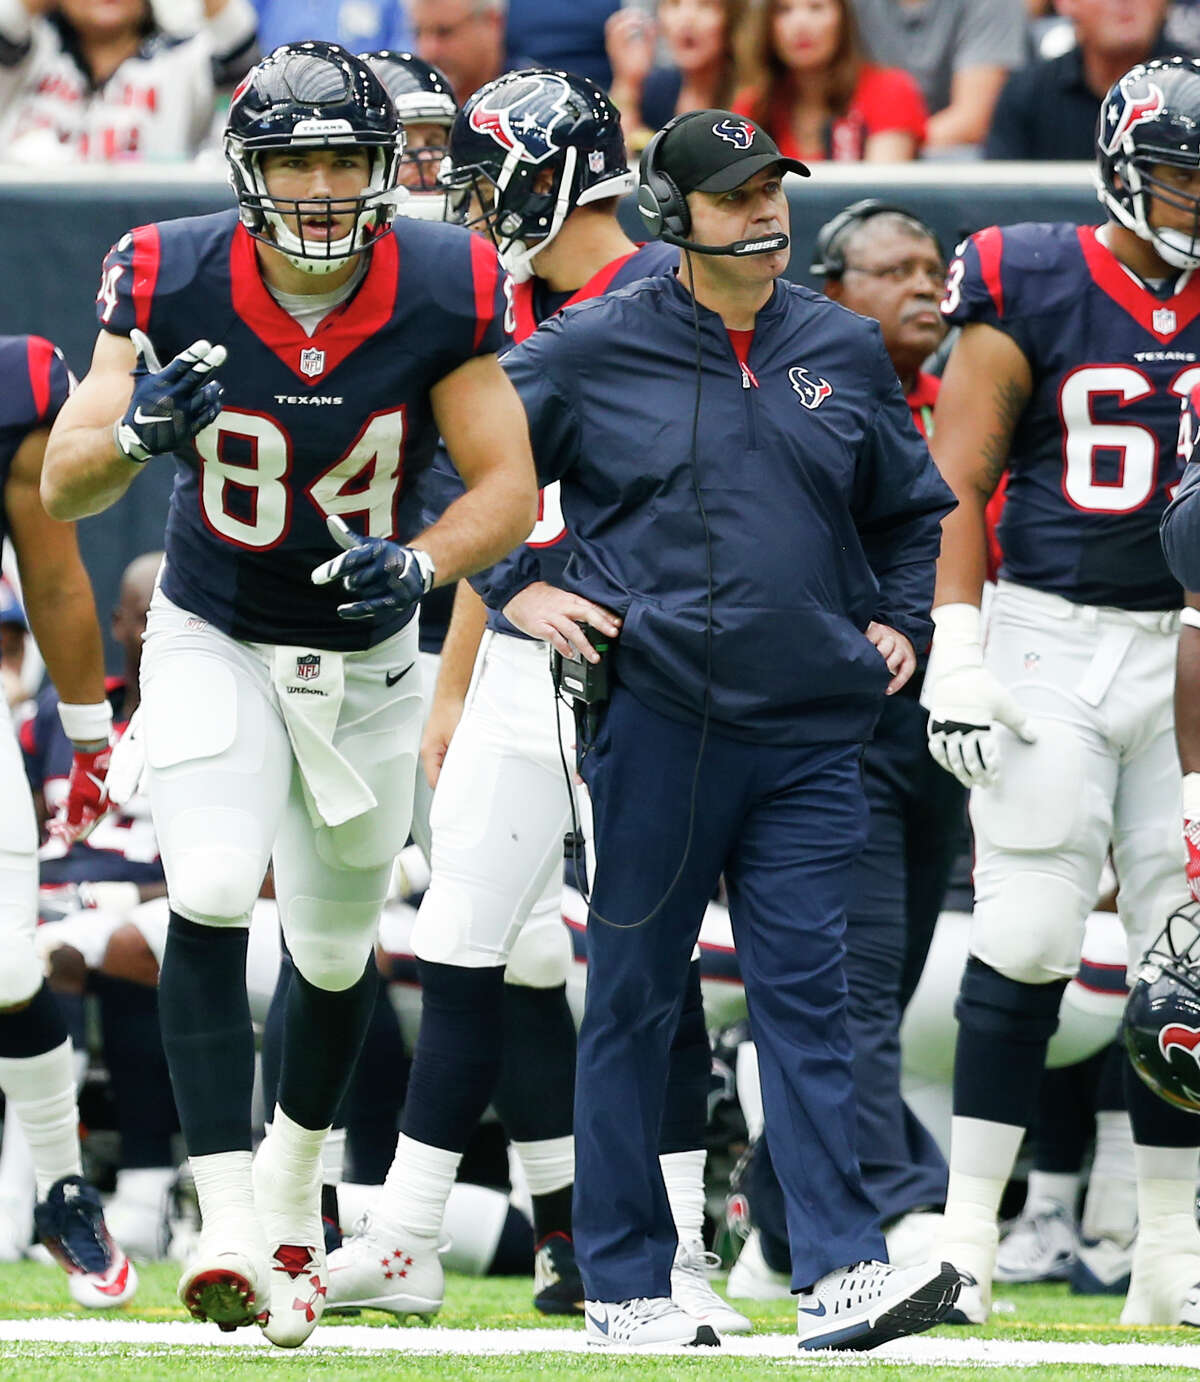 Houston Texans tight end Ryan Griffin (84) runs past head coach Bill O'Brien as he comes into the game during the second quarter of an NFL football game at NRG Stadium on Sunday, Sept. 18, 2016, in Houston.